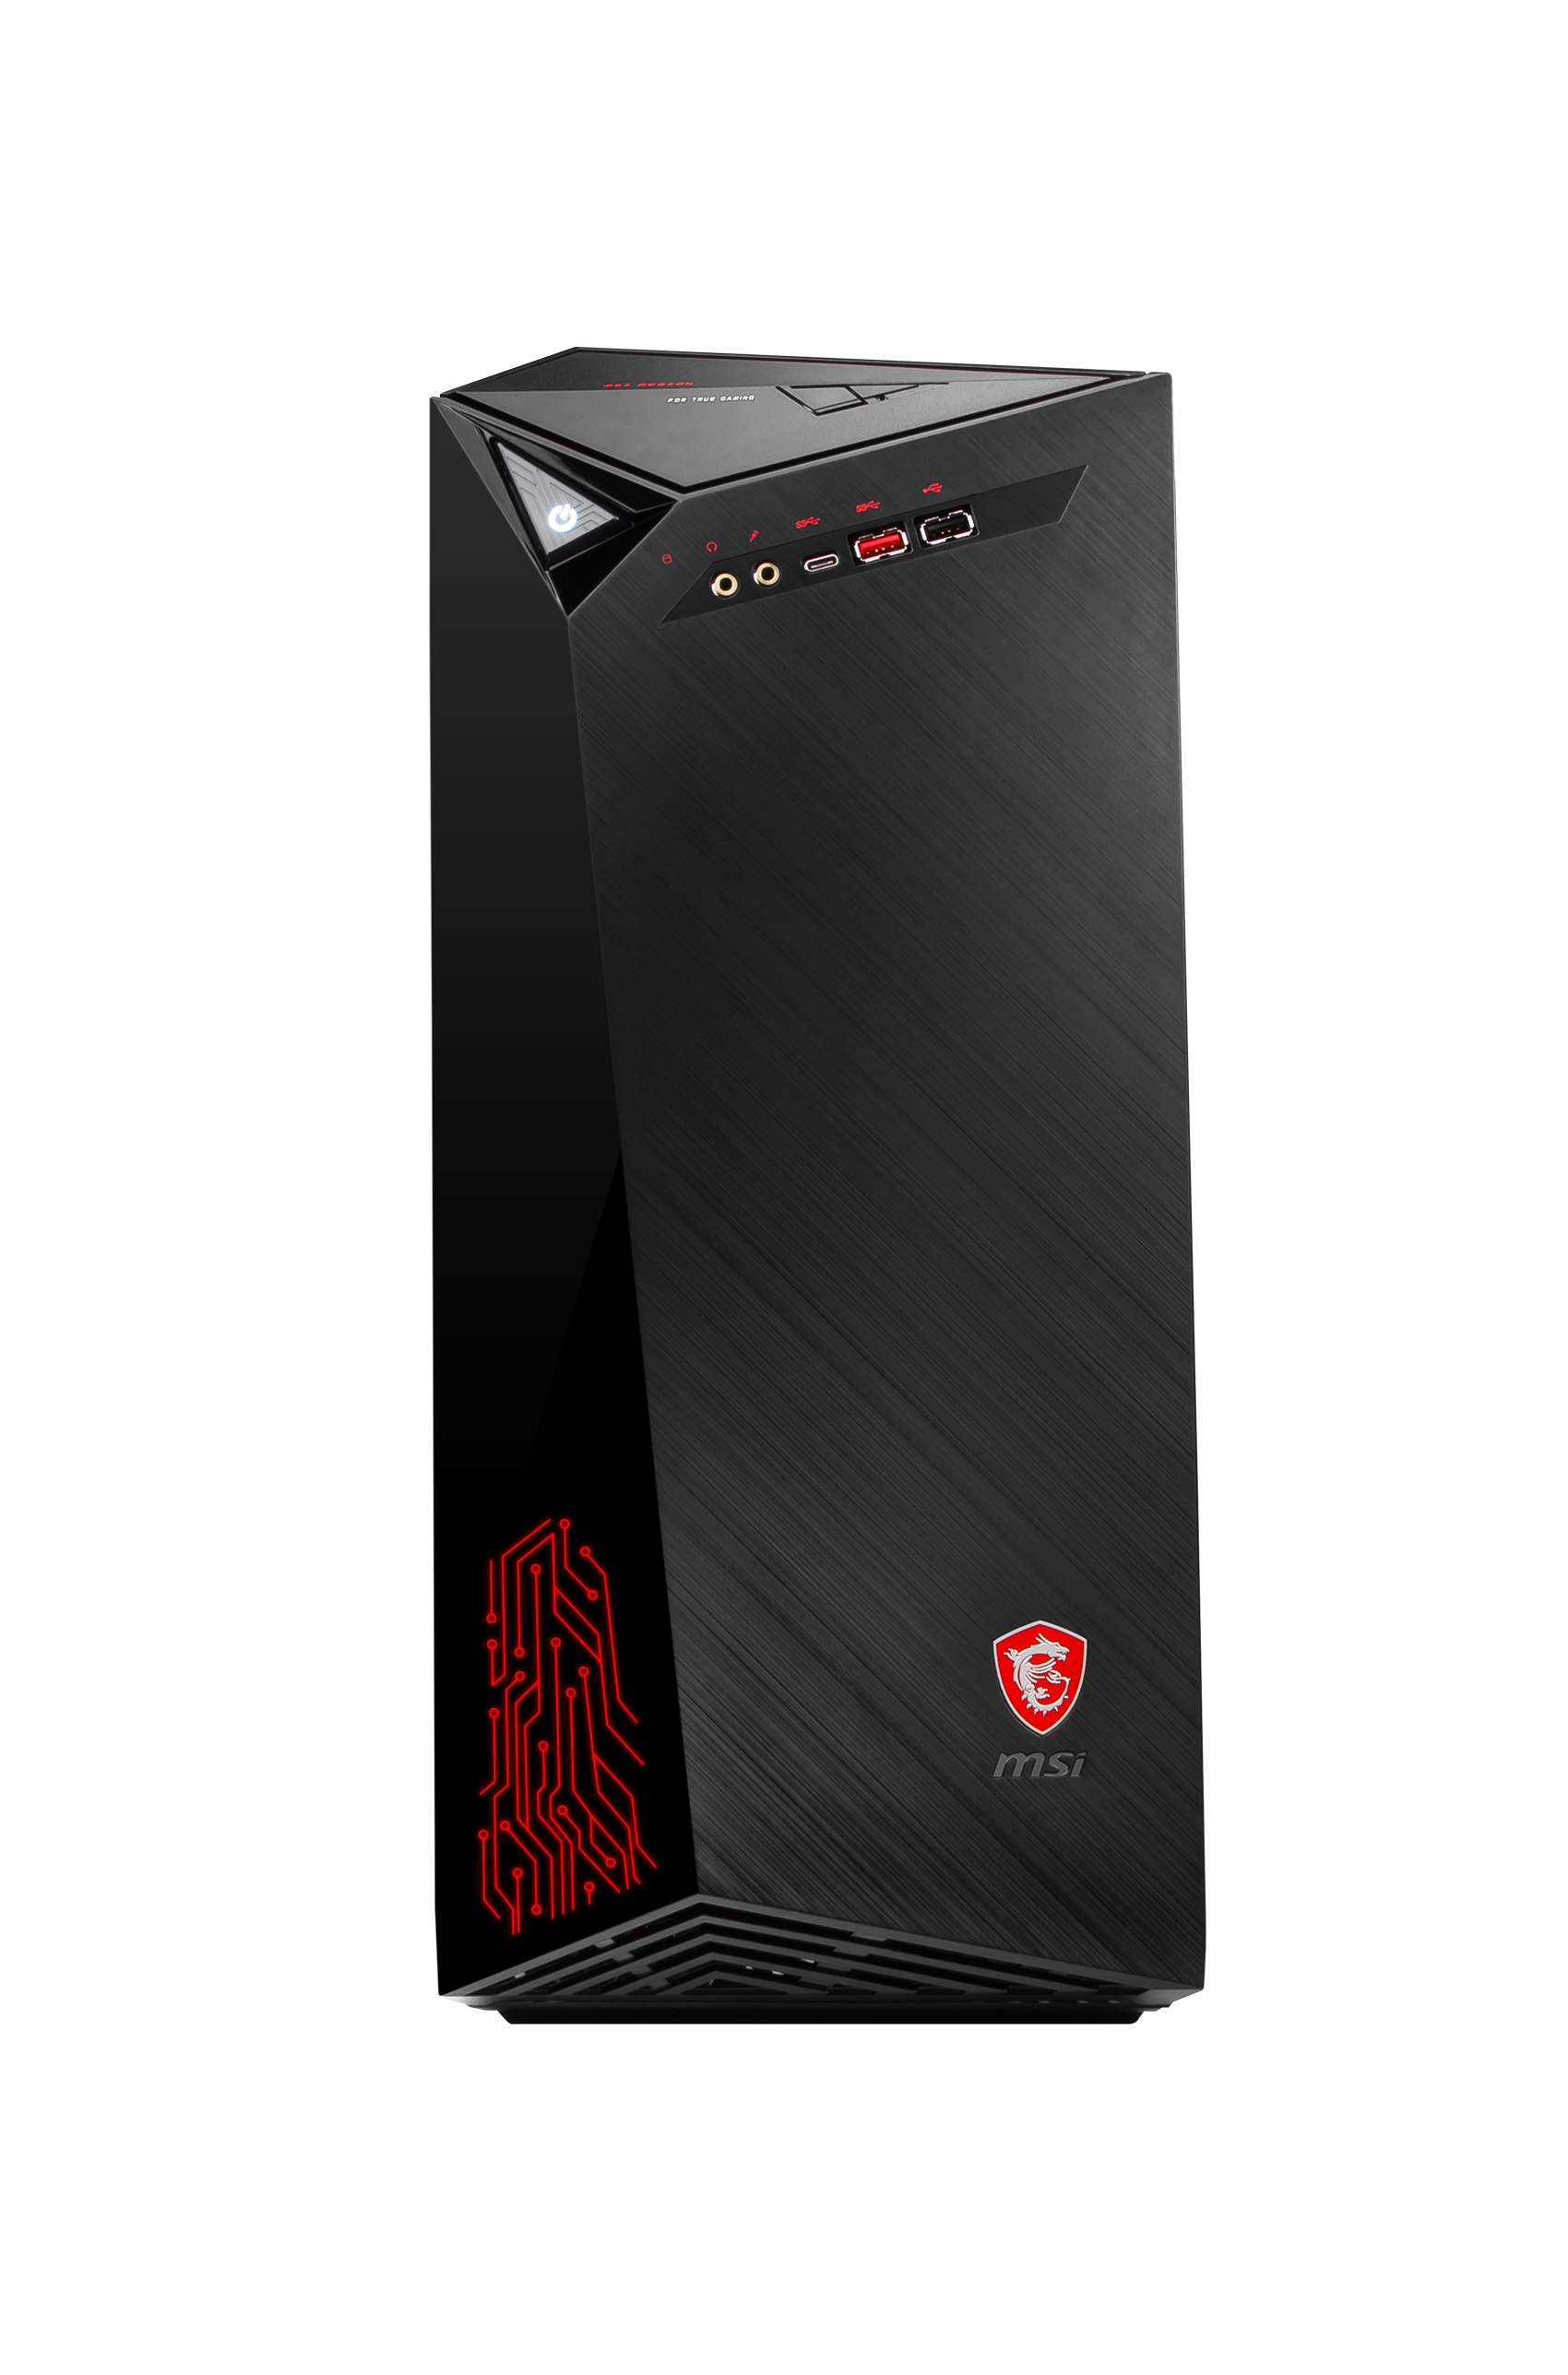 MSI PC GAMING INIFINITE I5-9400 16GB 256GB SSD + 2TB RTX 2060 AERO ITX 6G OC WIN 10 HOME